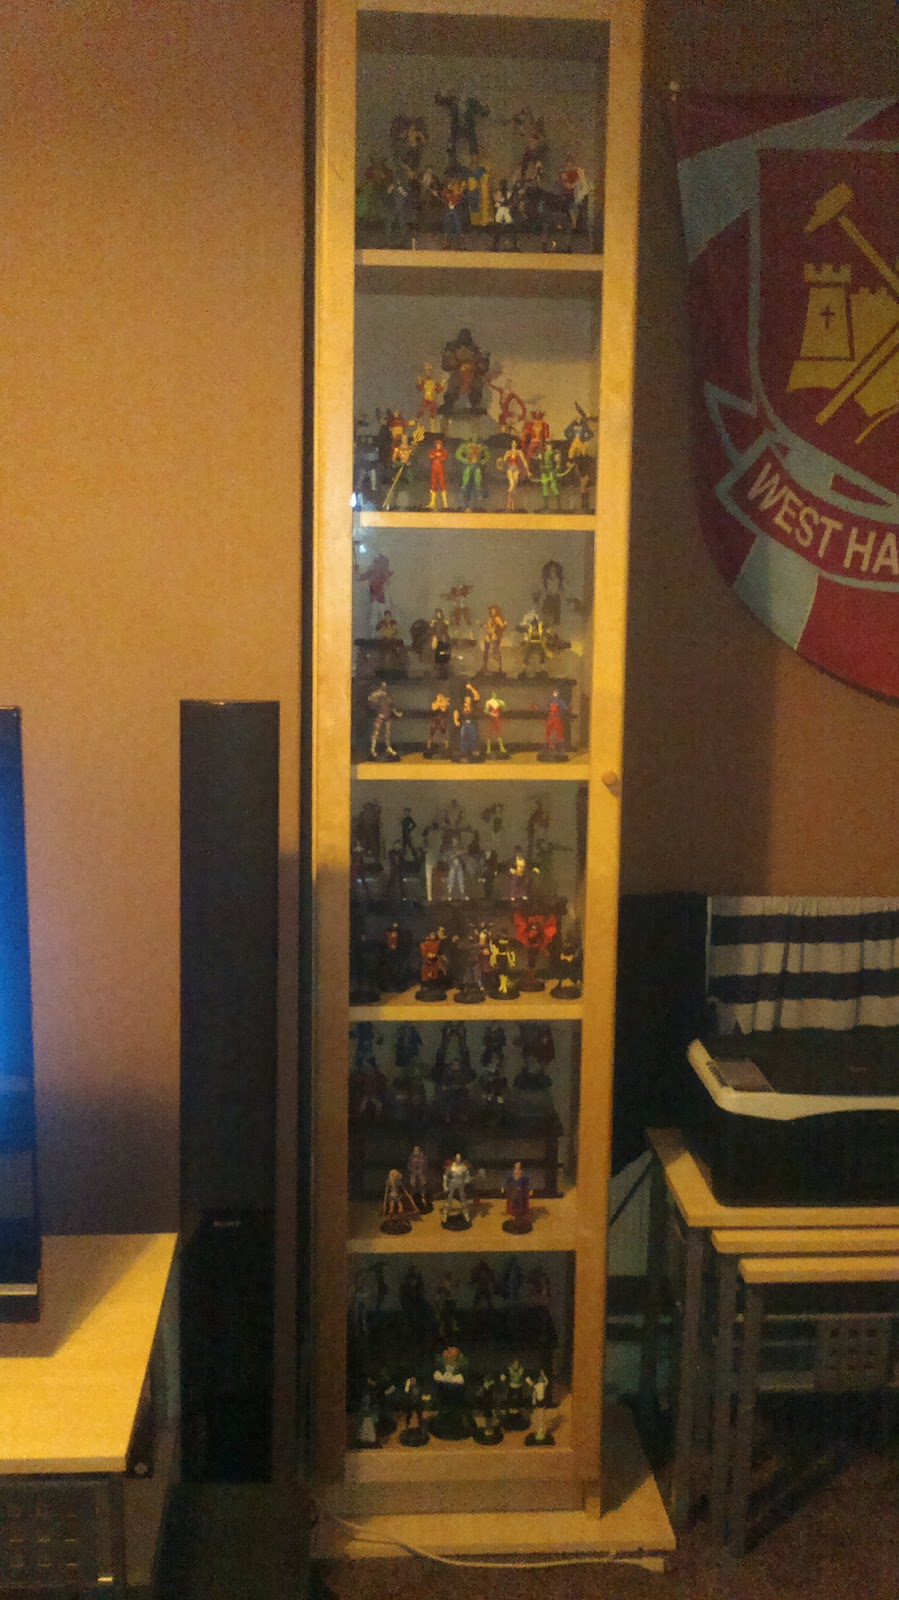 dave's blog: DC SUPER HERO FIGURINE COLLECTION - MY DISPLAY CABINET